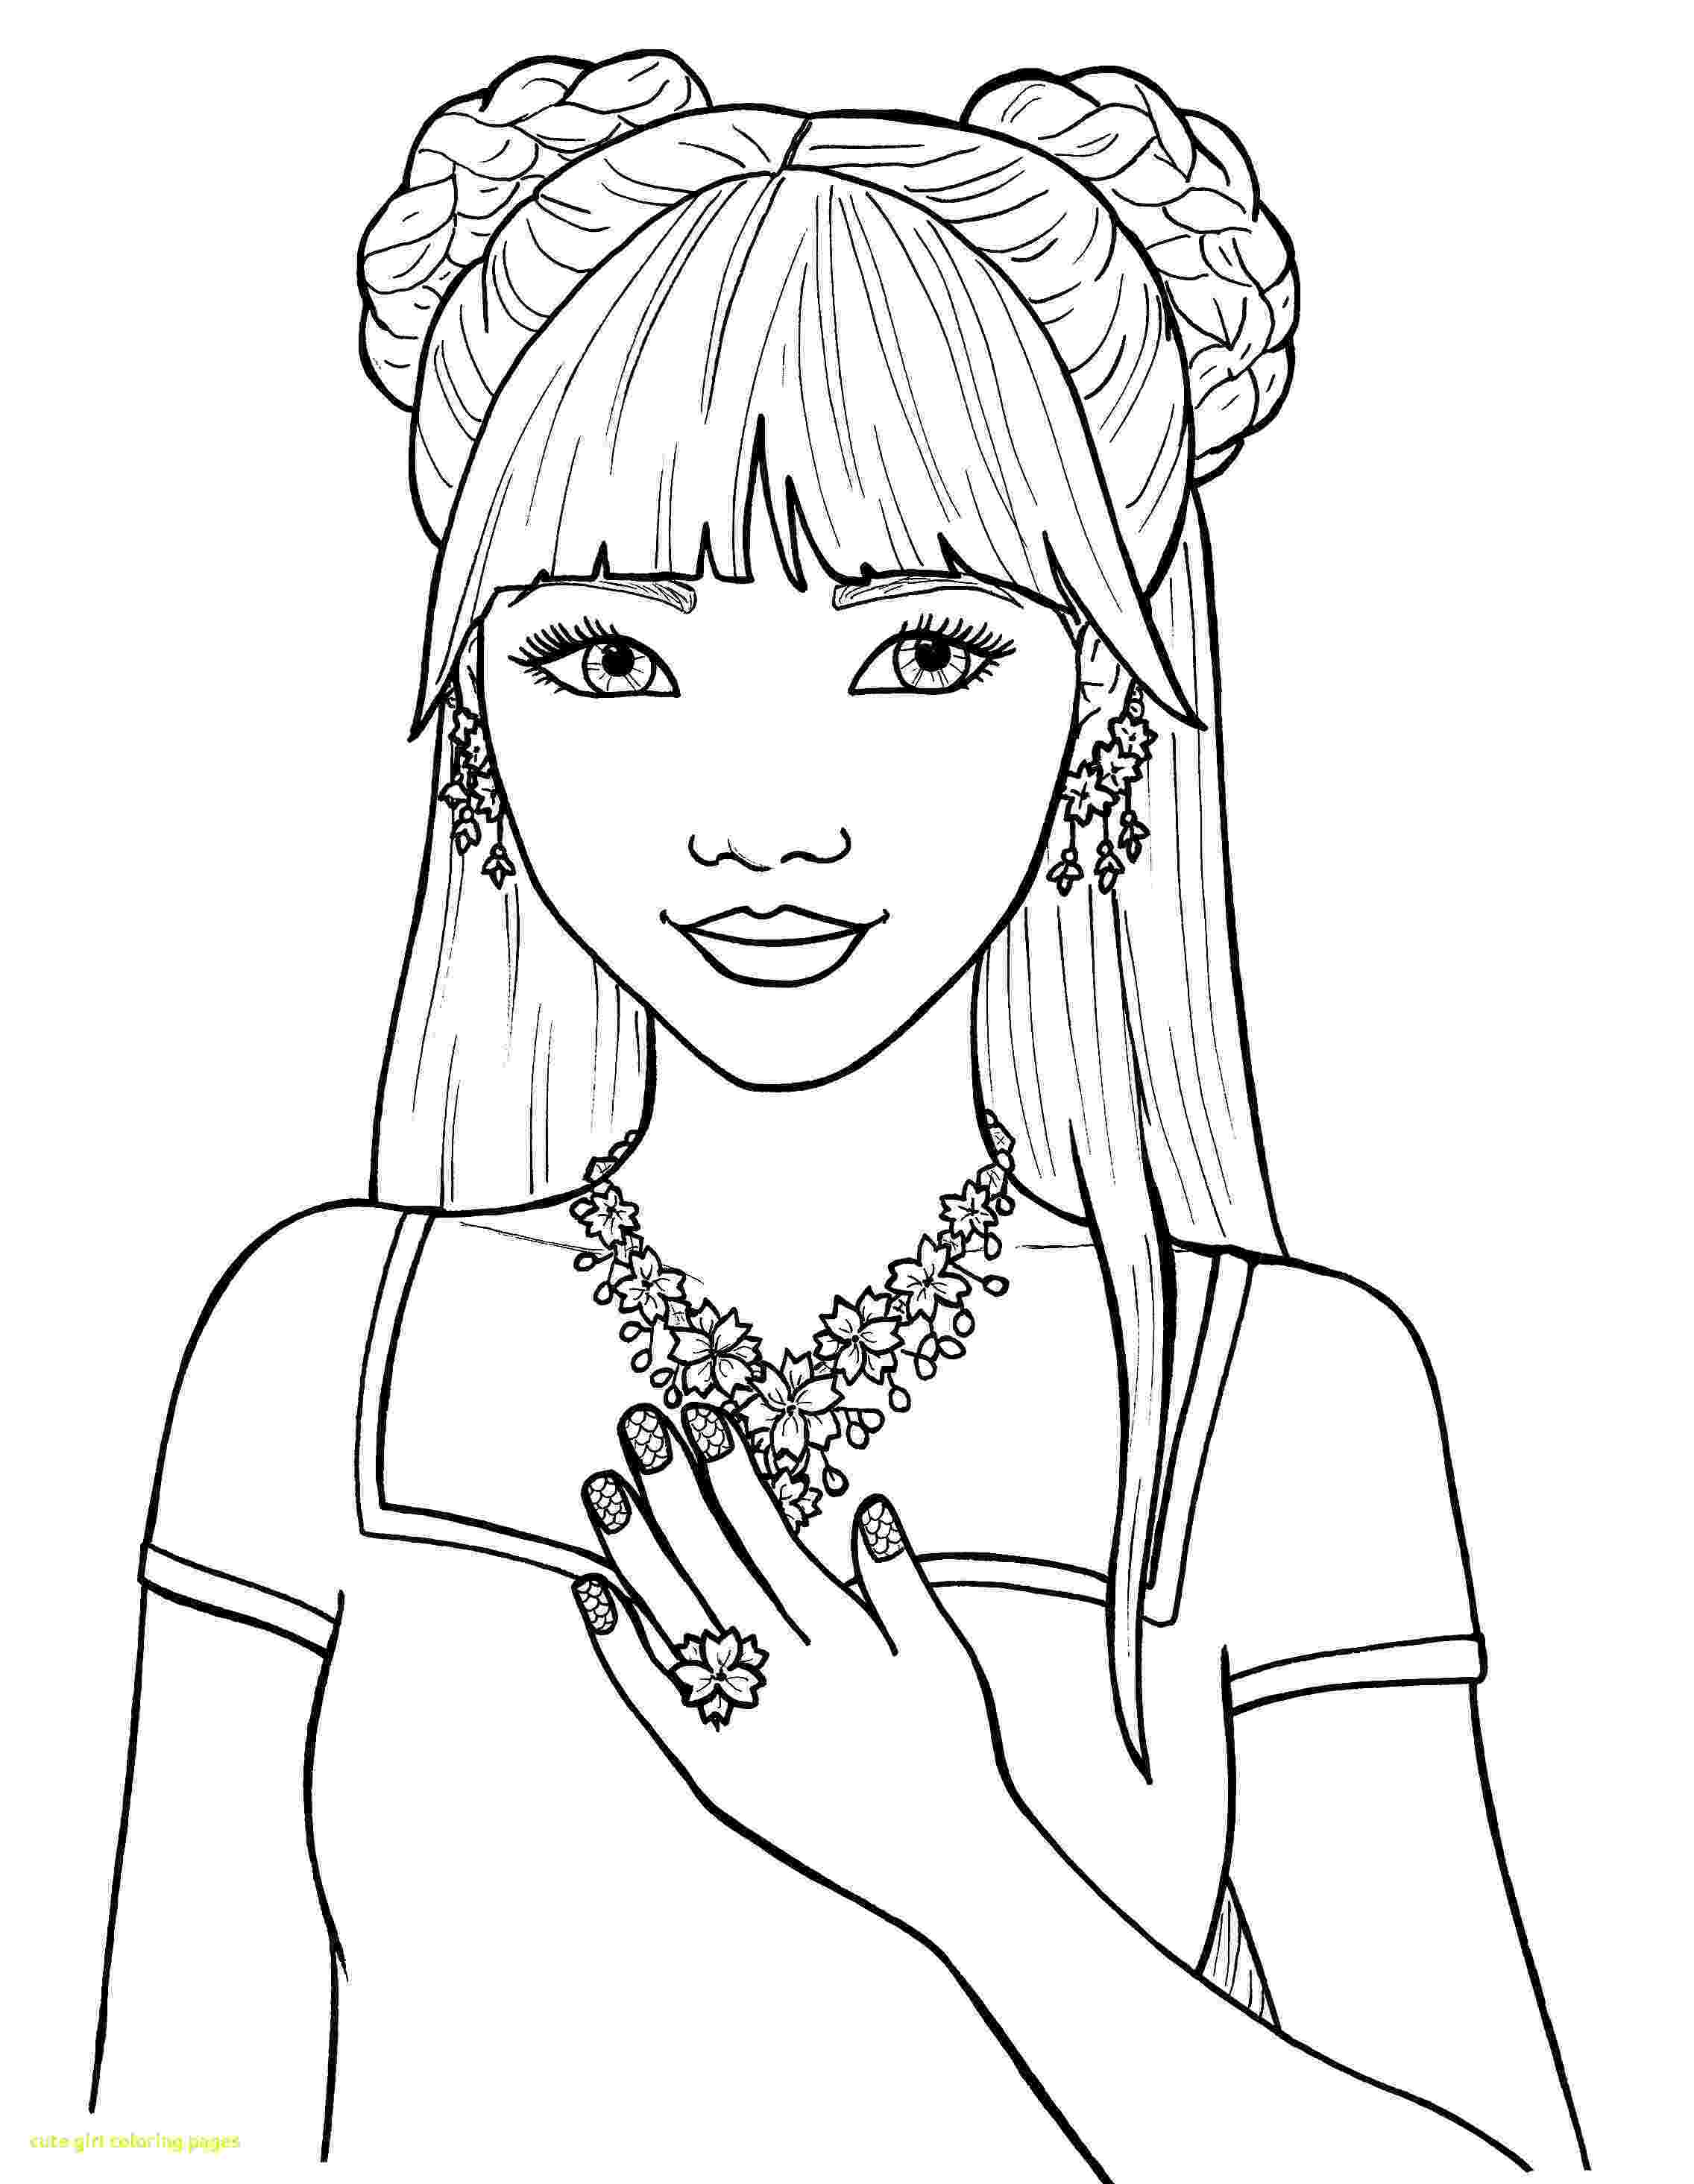 girls coloring pictures cute girl coloring pages to download and print for free coloring pictures girls